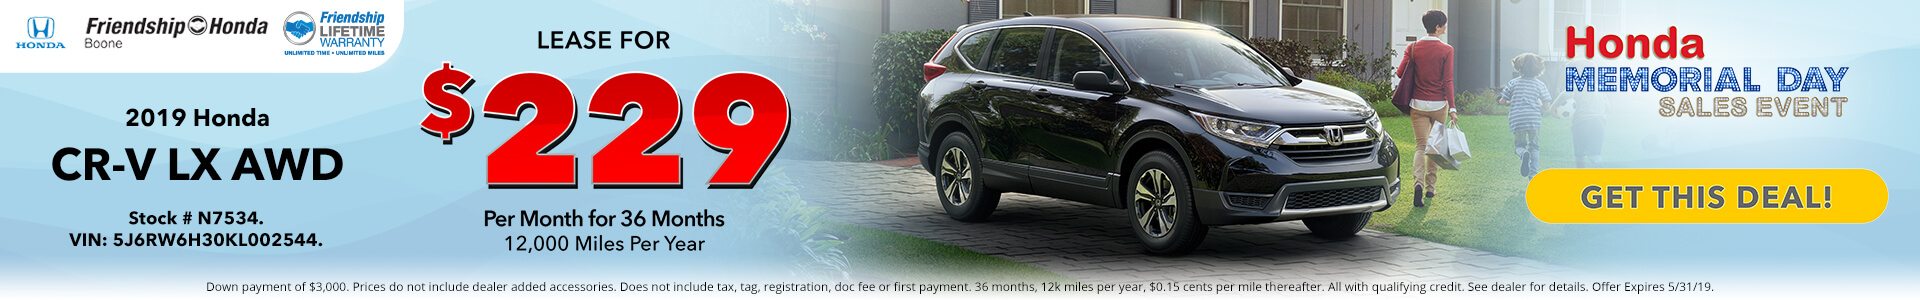 Honda CR-V LX $229 Lease